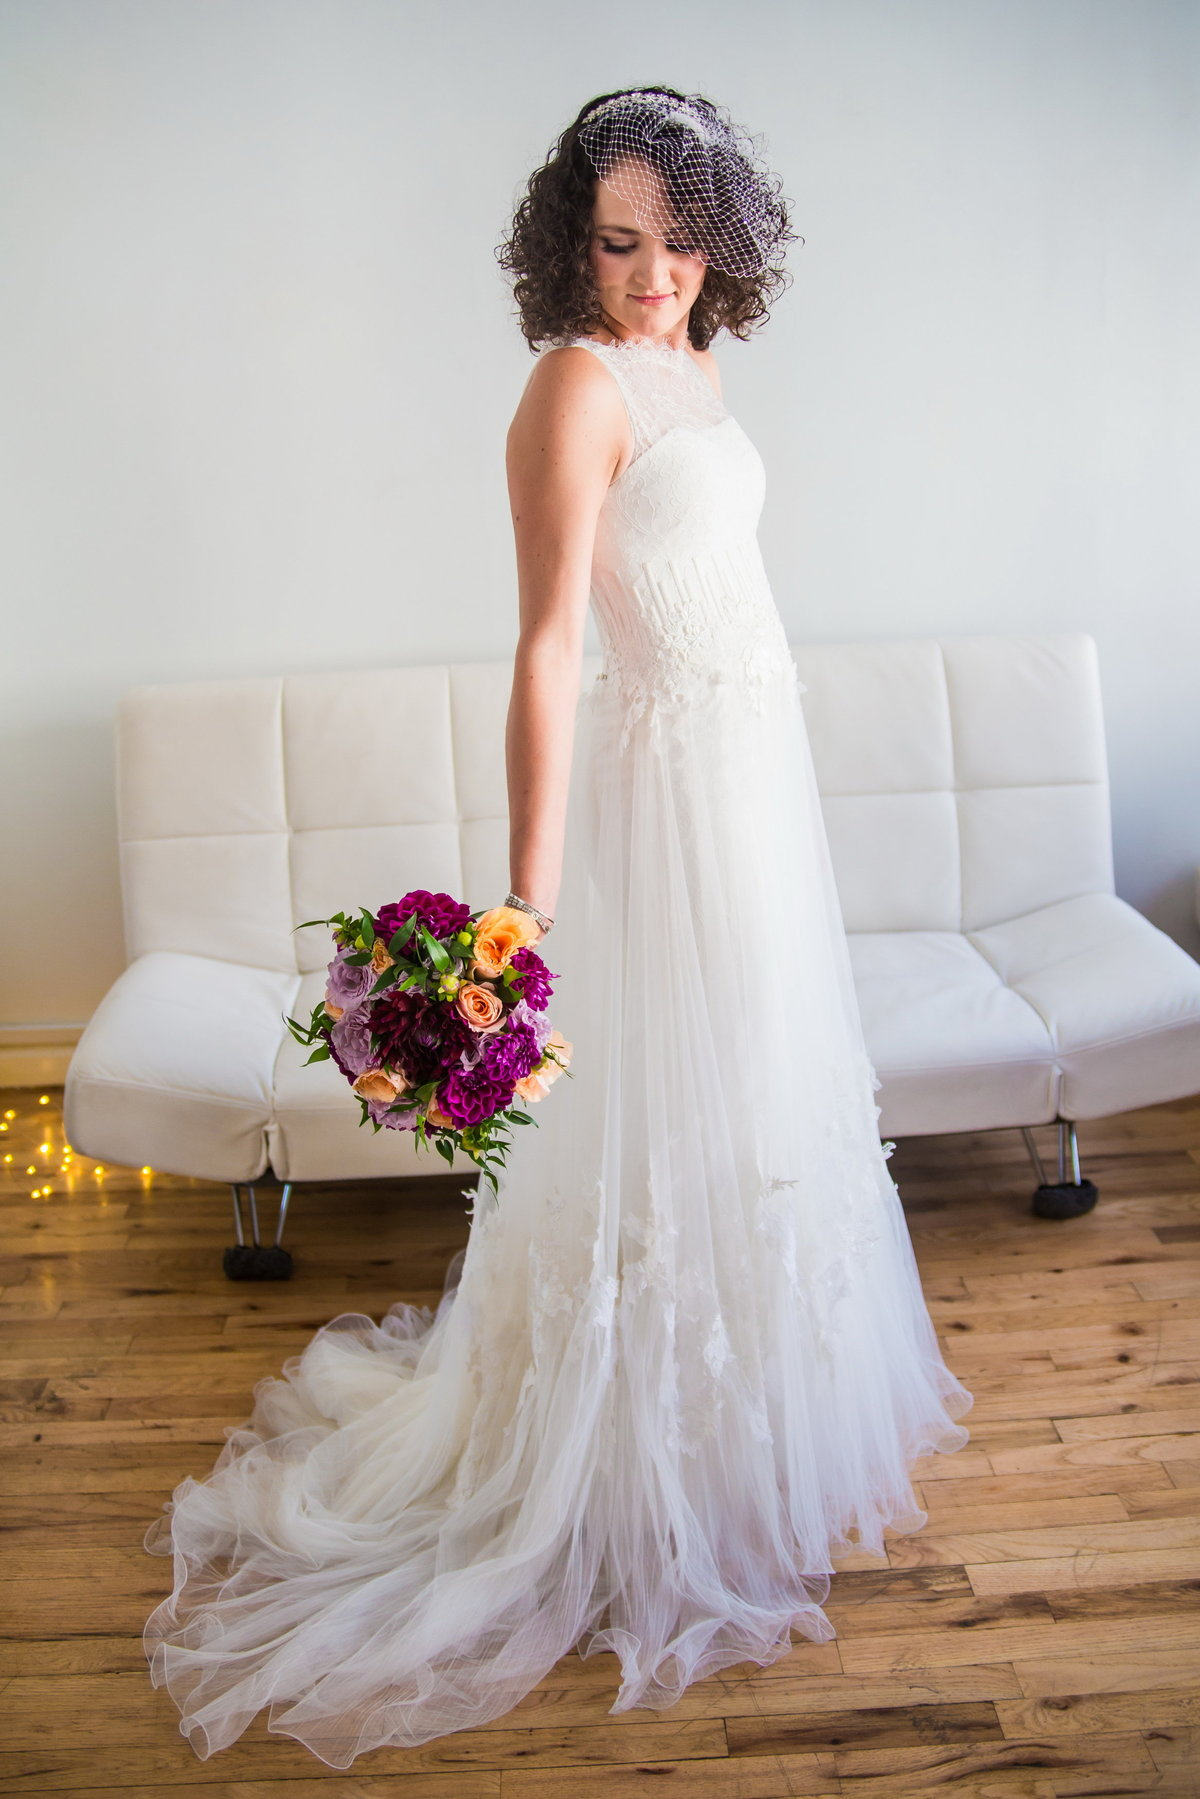 Bride in dress with brightly colored bouquet, at the Lofts at Prince, NYC